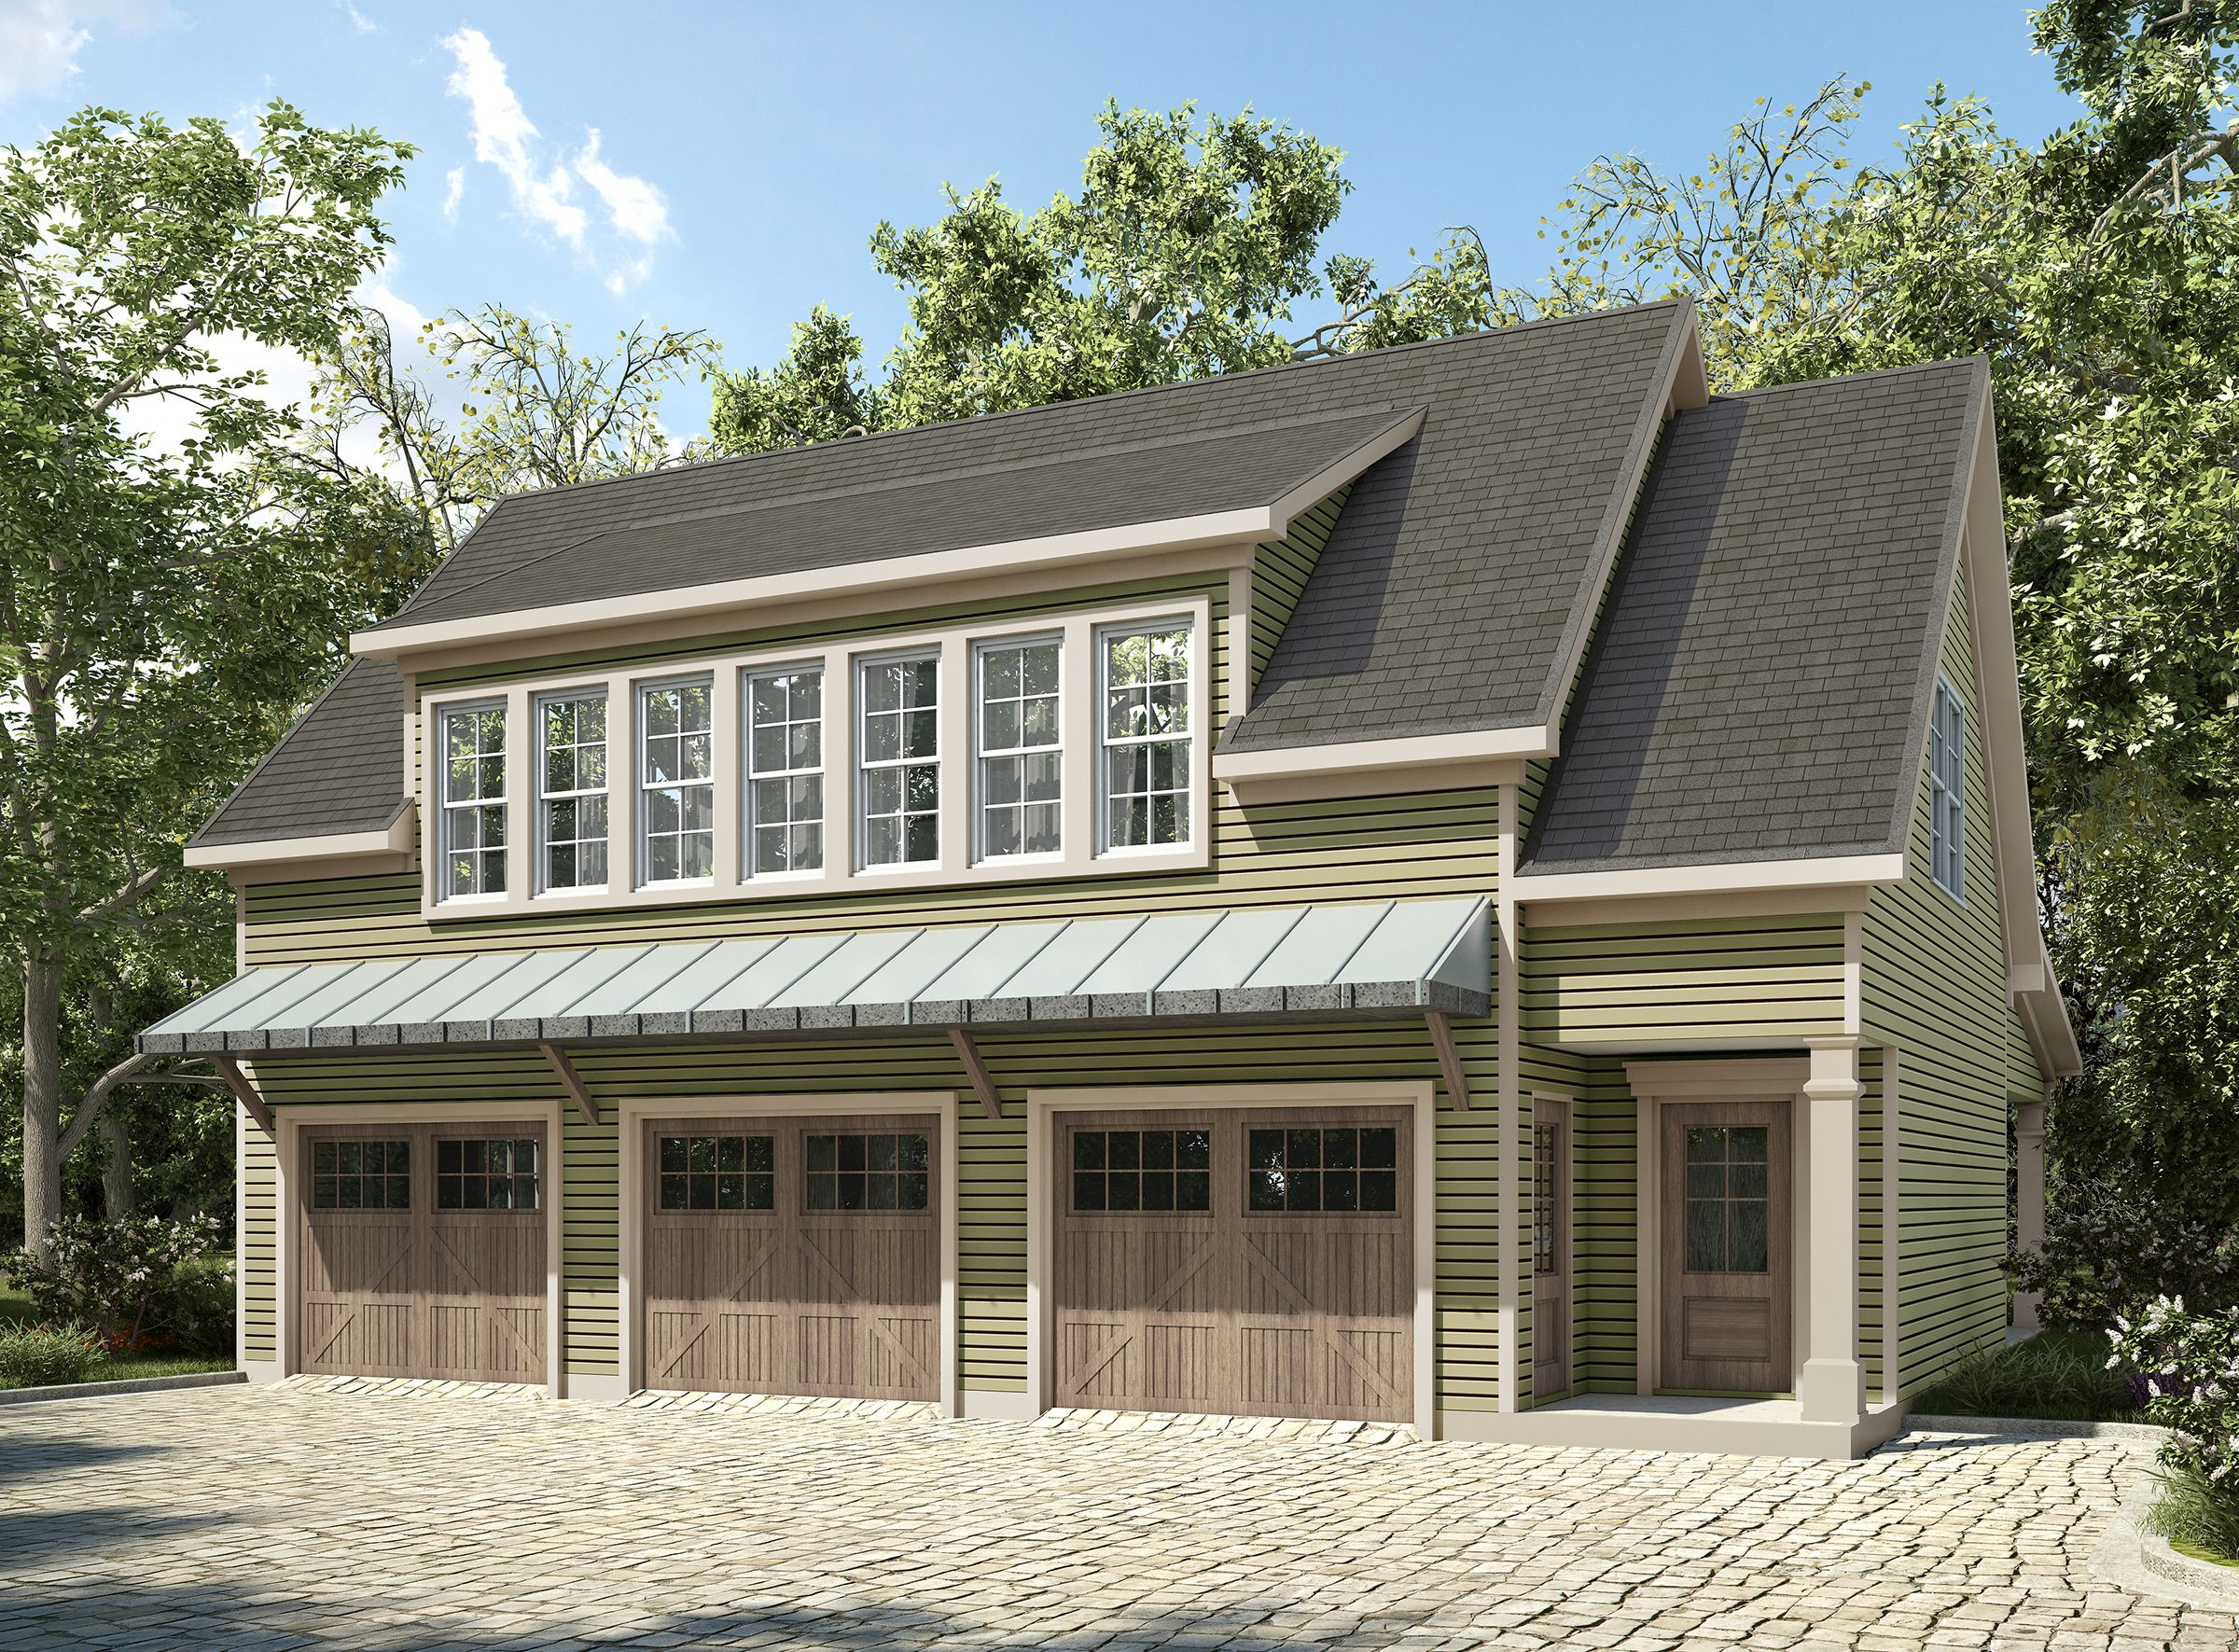 Plan 36057dk 3 Bay Carriage House Plan With Shed Roof In Back Carriage House Plans Carriage House Garage Garage House Plans